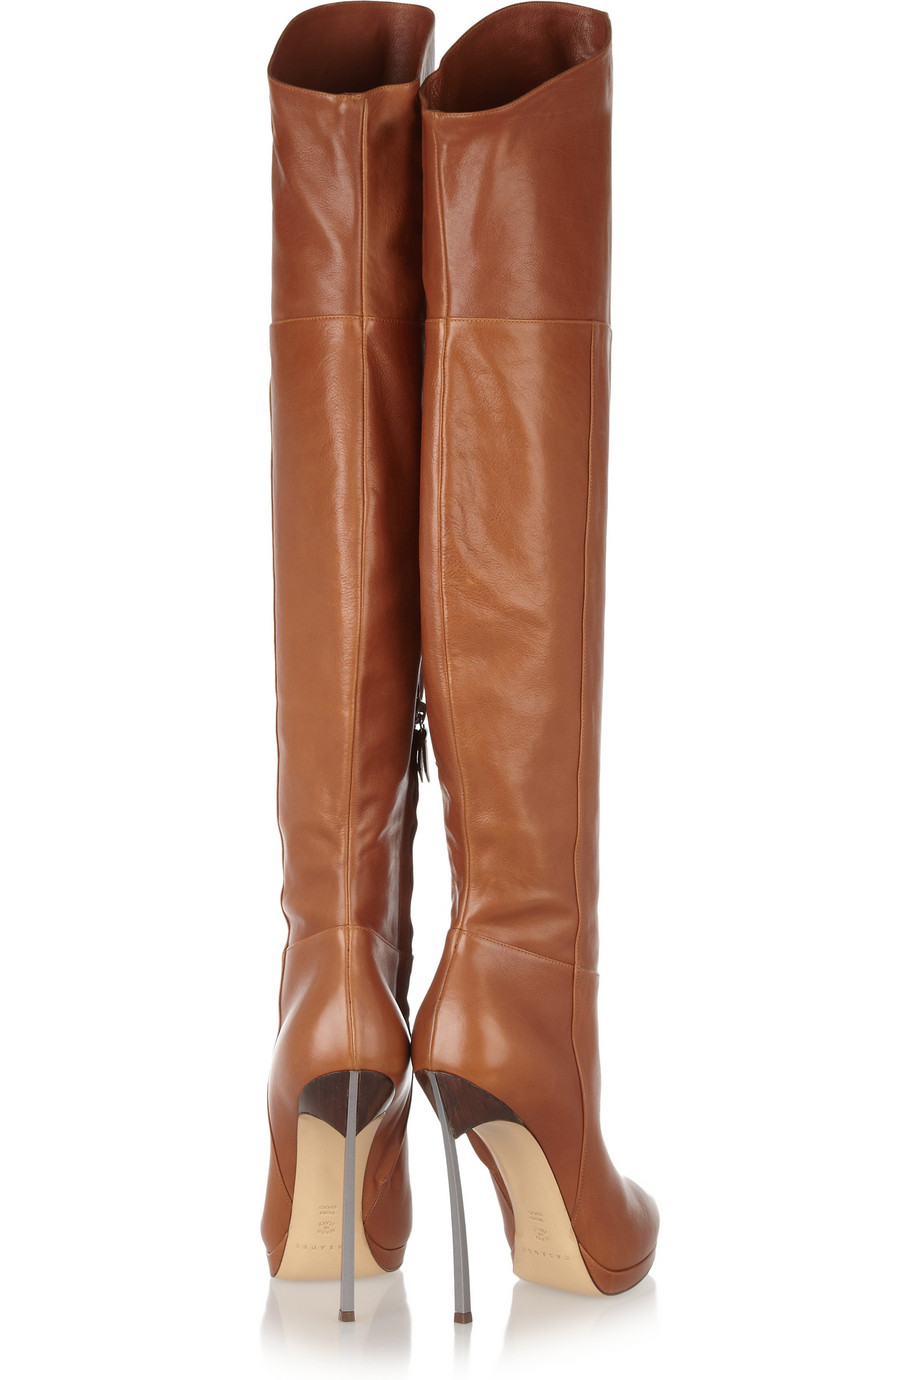 Casadei Leather Thigh Boots in Brown | Lyst